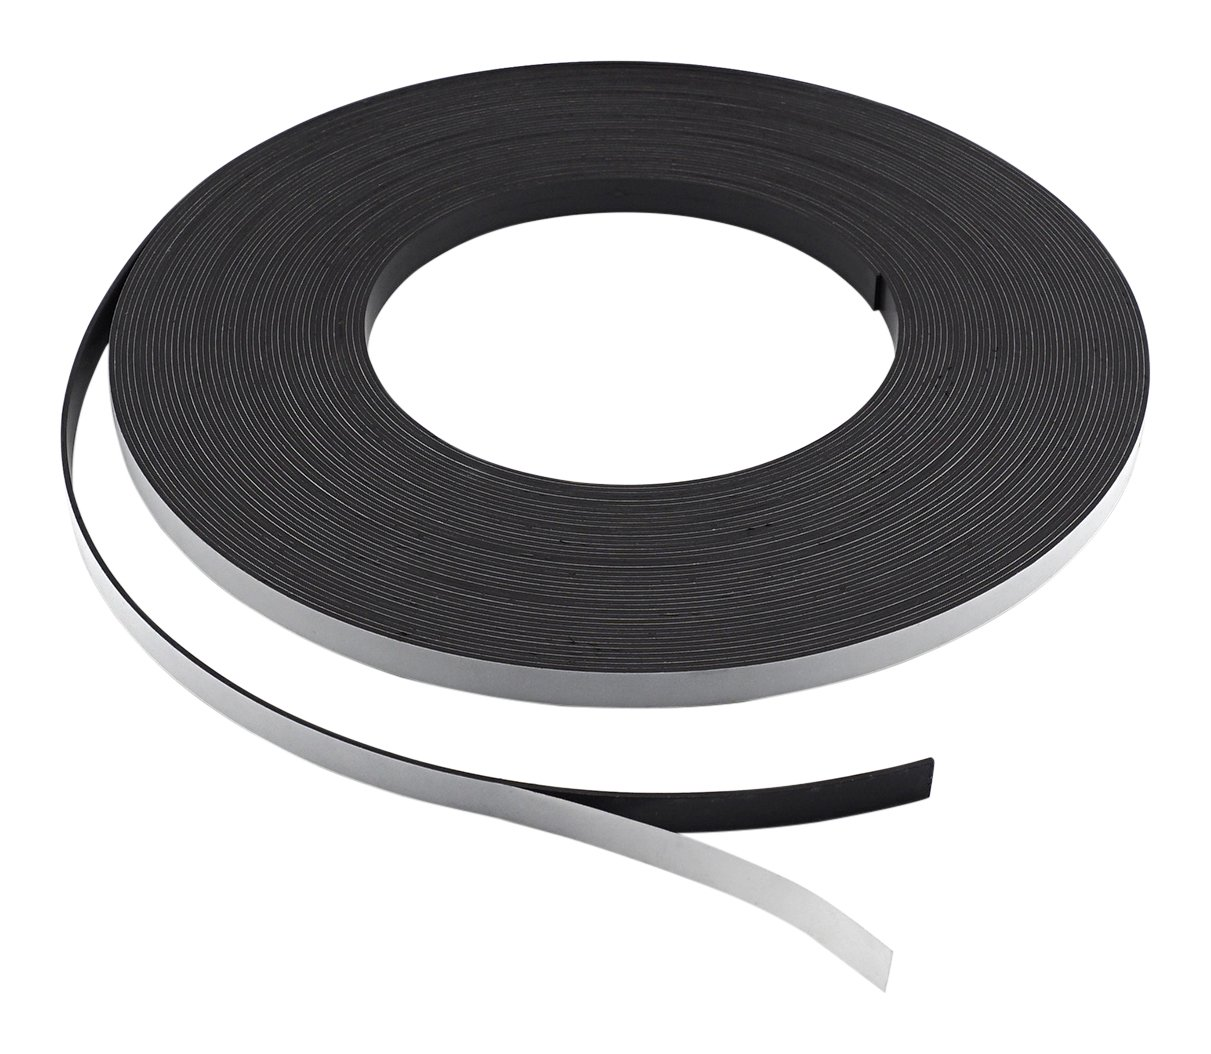 Master Magnetics ZG05A-ABX Flexible Magnet Strip with Adhesive Back, 1/16'' Thick, 1/4'' Wide, 100' (1 Roll)